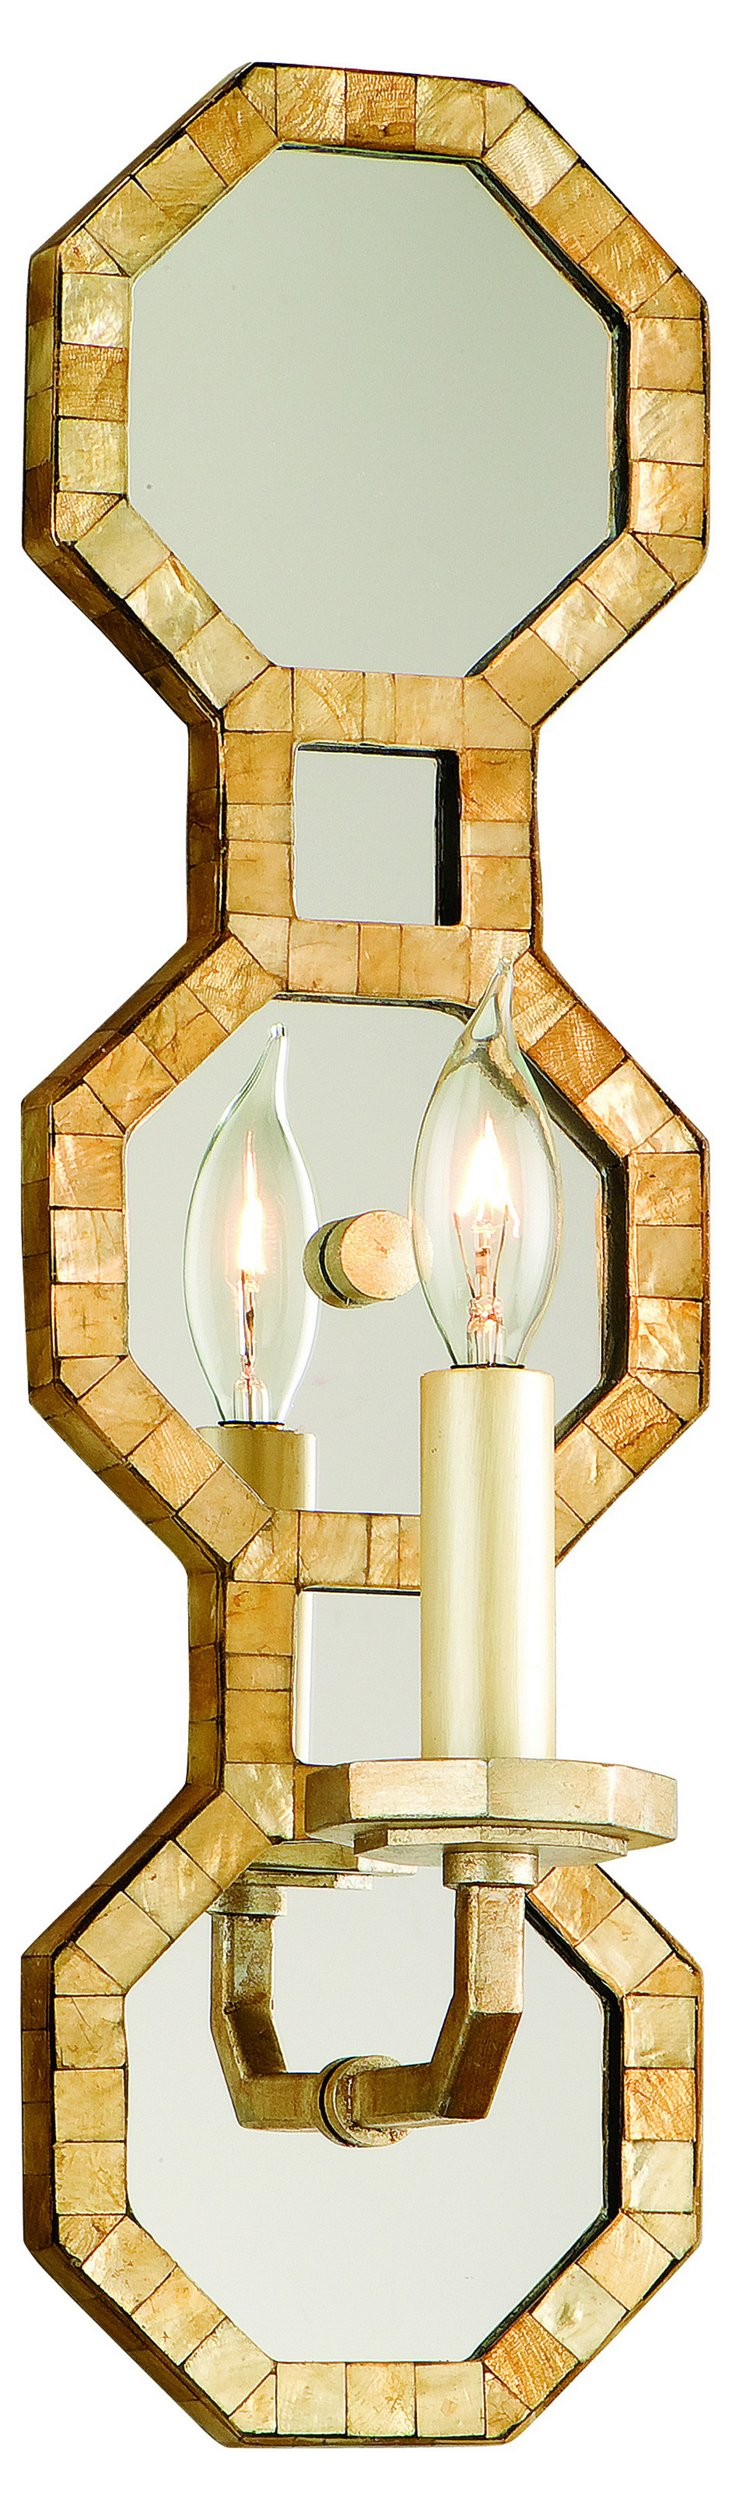 Regatta 1-Light Wall Sconce, Gold Leaf